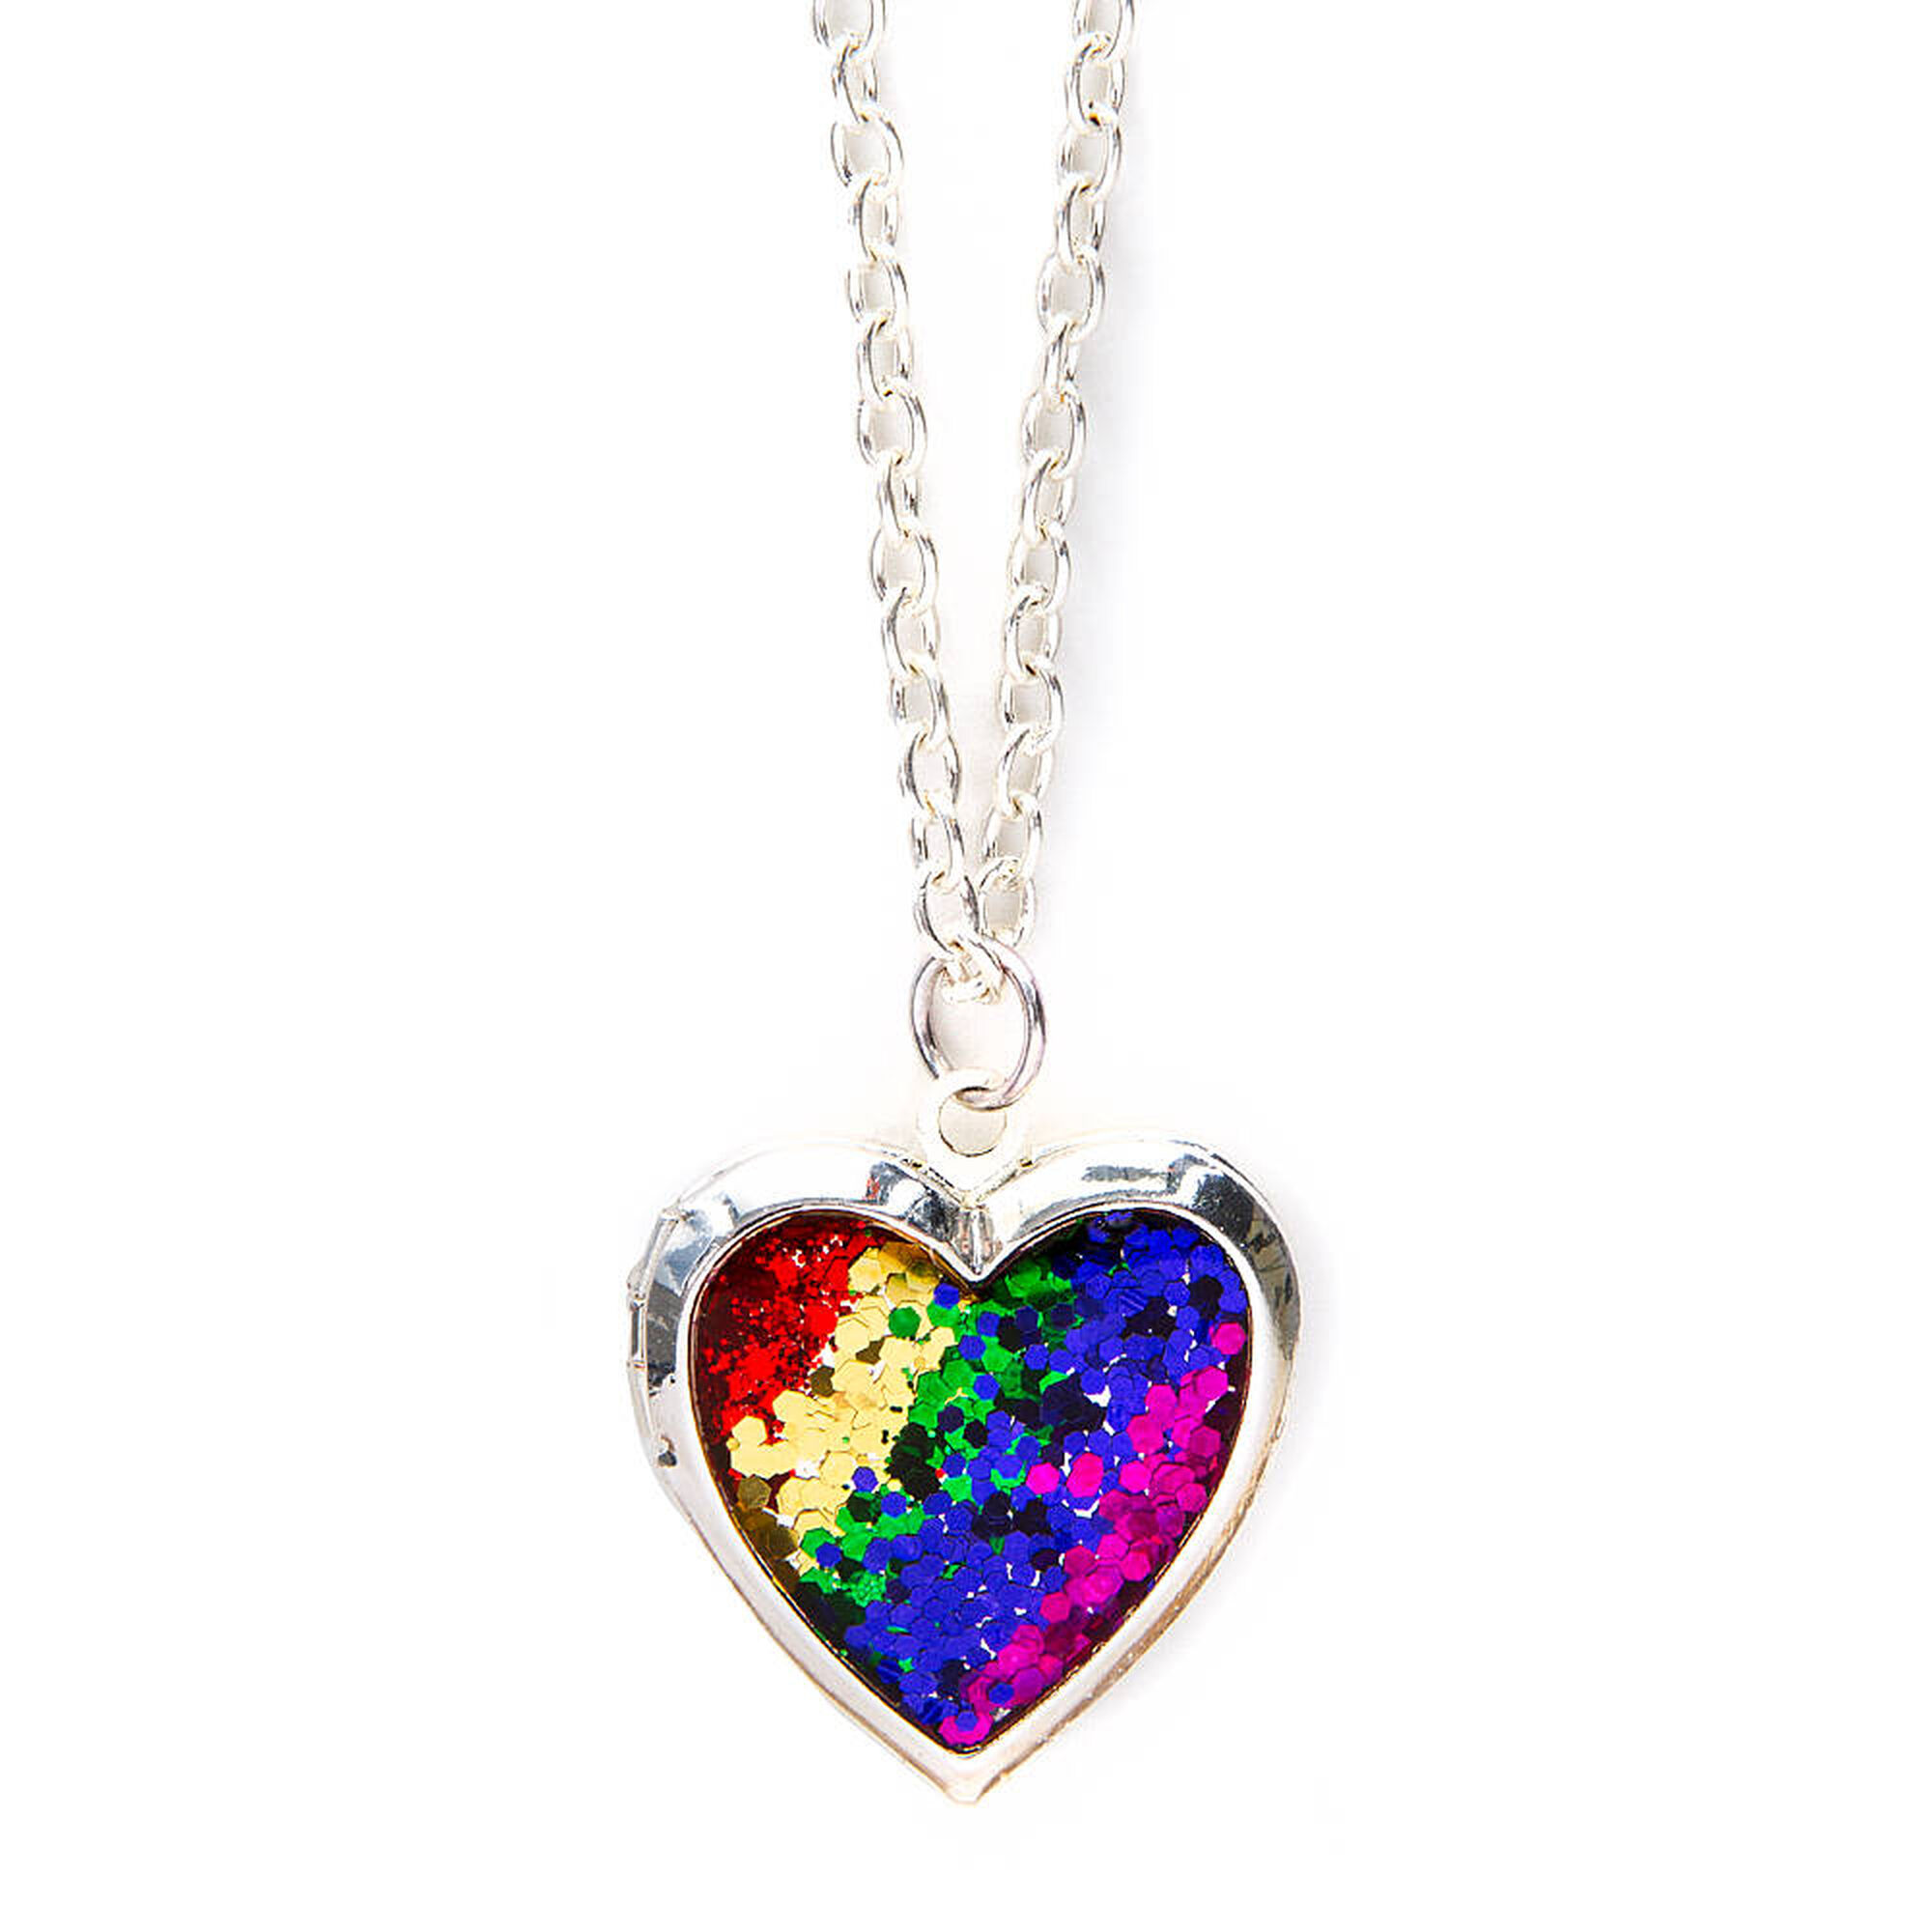 Rainbow Glitter Heart Locket Pendant Necklace  Claire's Us. Clear Glass Pendant. Fairytale Wedding Rings. Micro Pave Rings. Carrera Tag Heuer Watches. Weird Watches. Moissanite Rings. Inlay Earrings. Jewellery Pearls